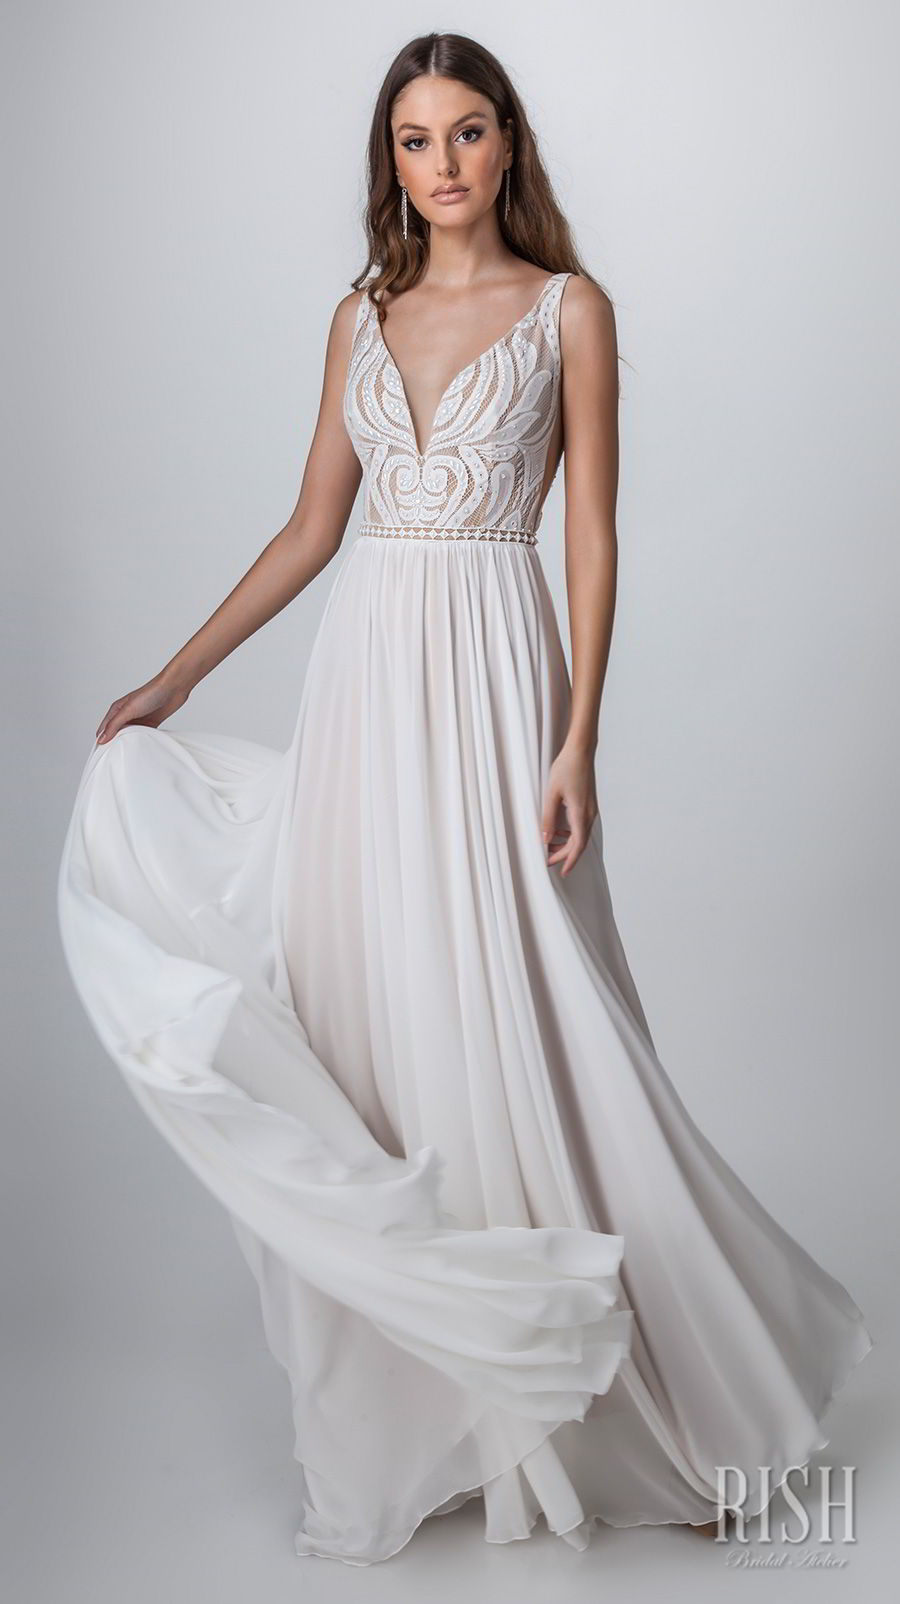 rish bridal sun dance 2018 sleeveless deep v neck heavily embellished bodice romantic glamorous soft a  line wedding dress v back chapel train (venice) mv